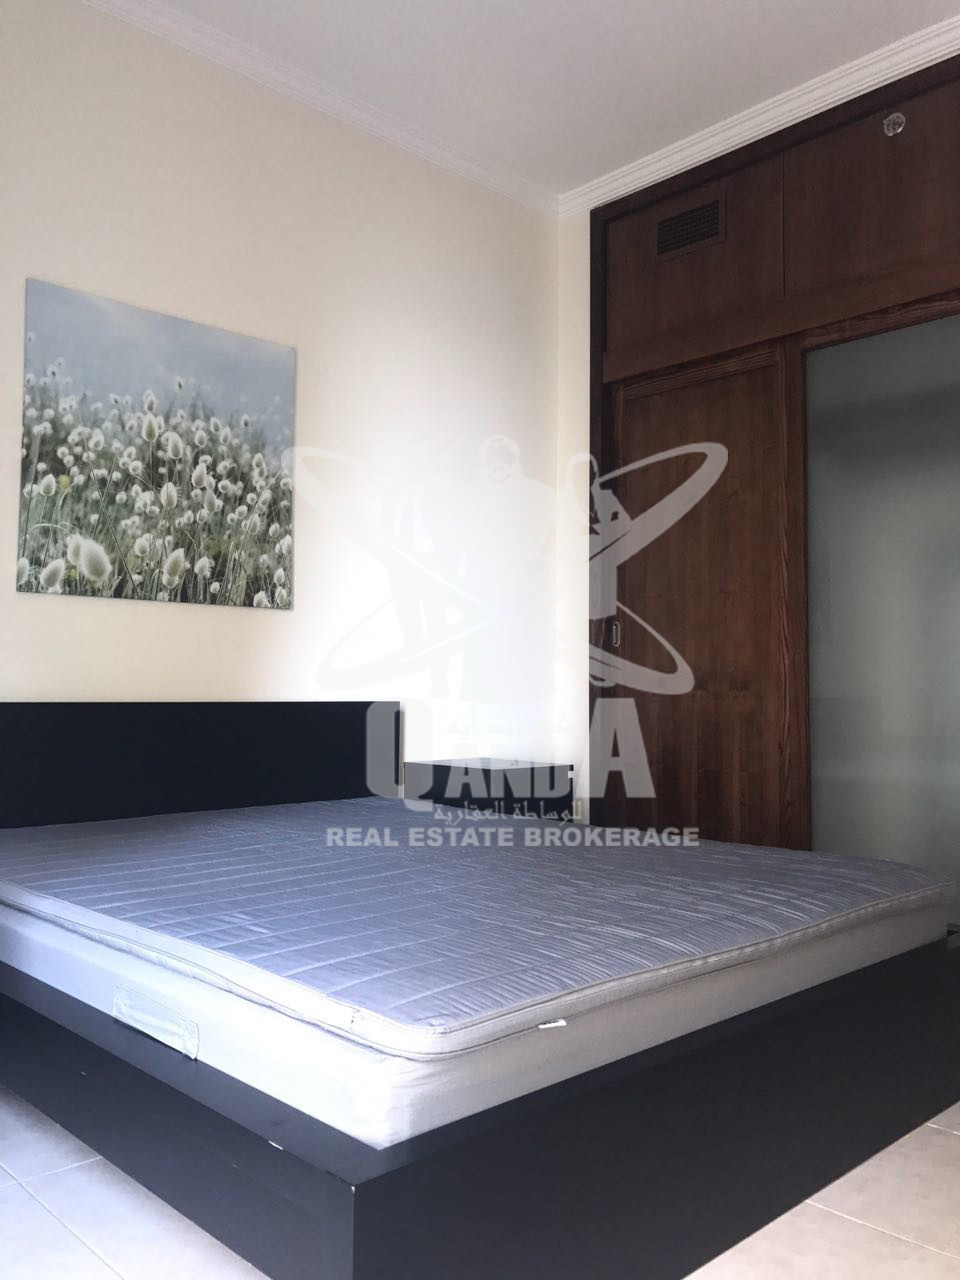 More than Better 2 Bedroom Apartment in Al Sahab 2 - Image 5